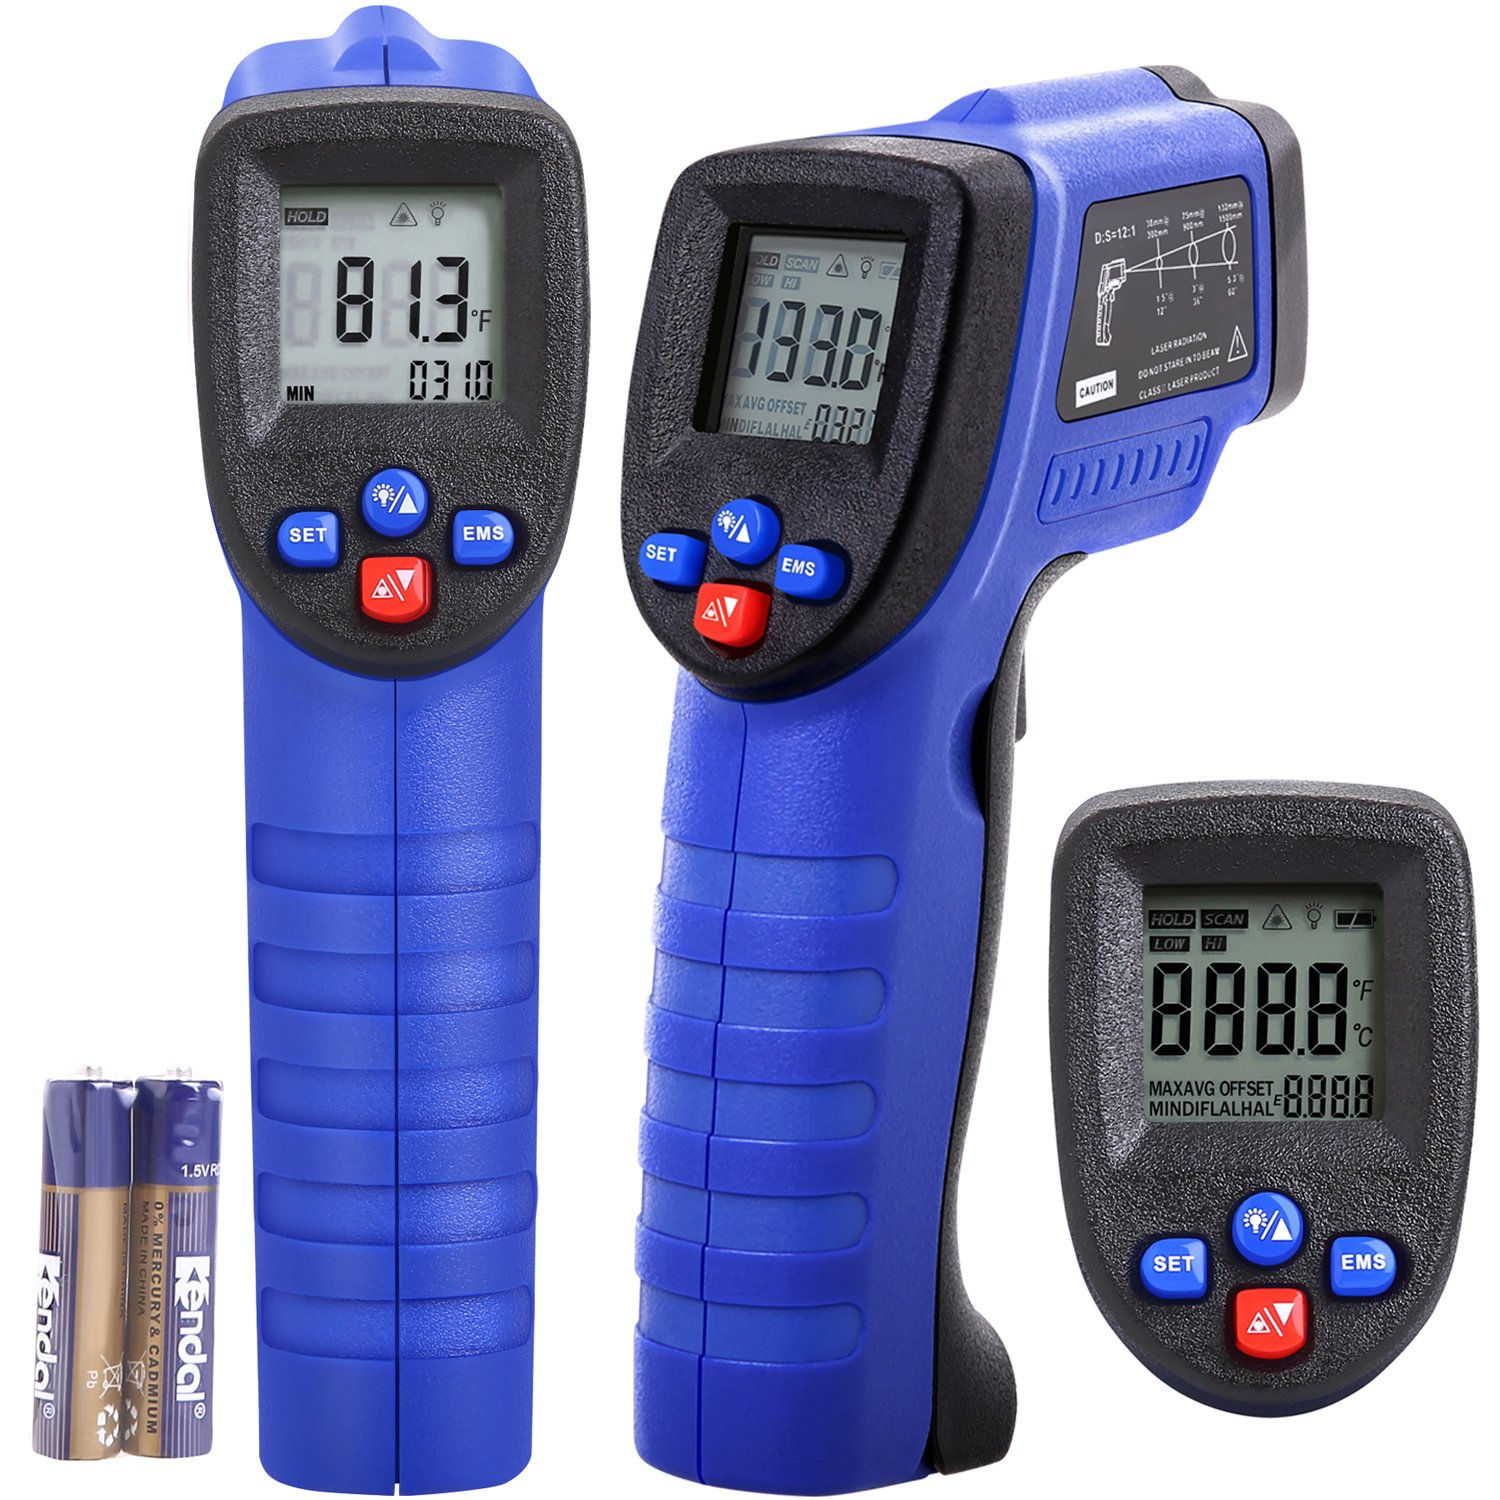 Koeson Professional Non-Contact Digital Laser Infrared Thermometer, Top Accuracy Temperature Gun -58℉~ 1022℉ (-50℃ ~ 550℃) with HD Backlit LCD Display, Adjustable Emissivity, Firm Grip/ Blue & Black